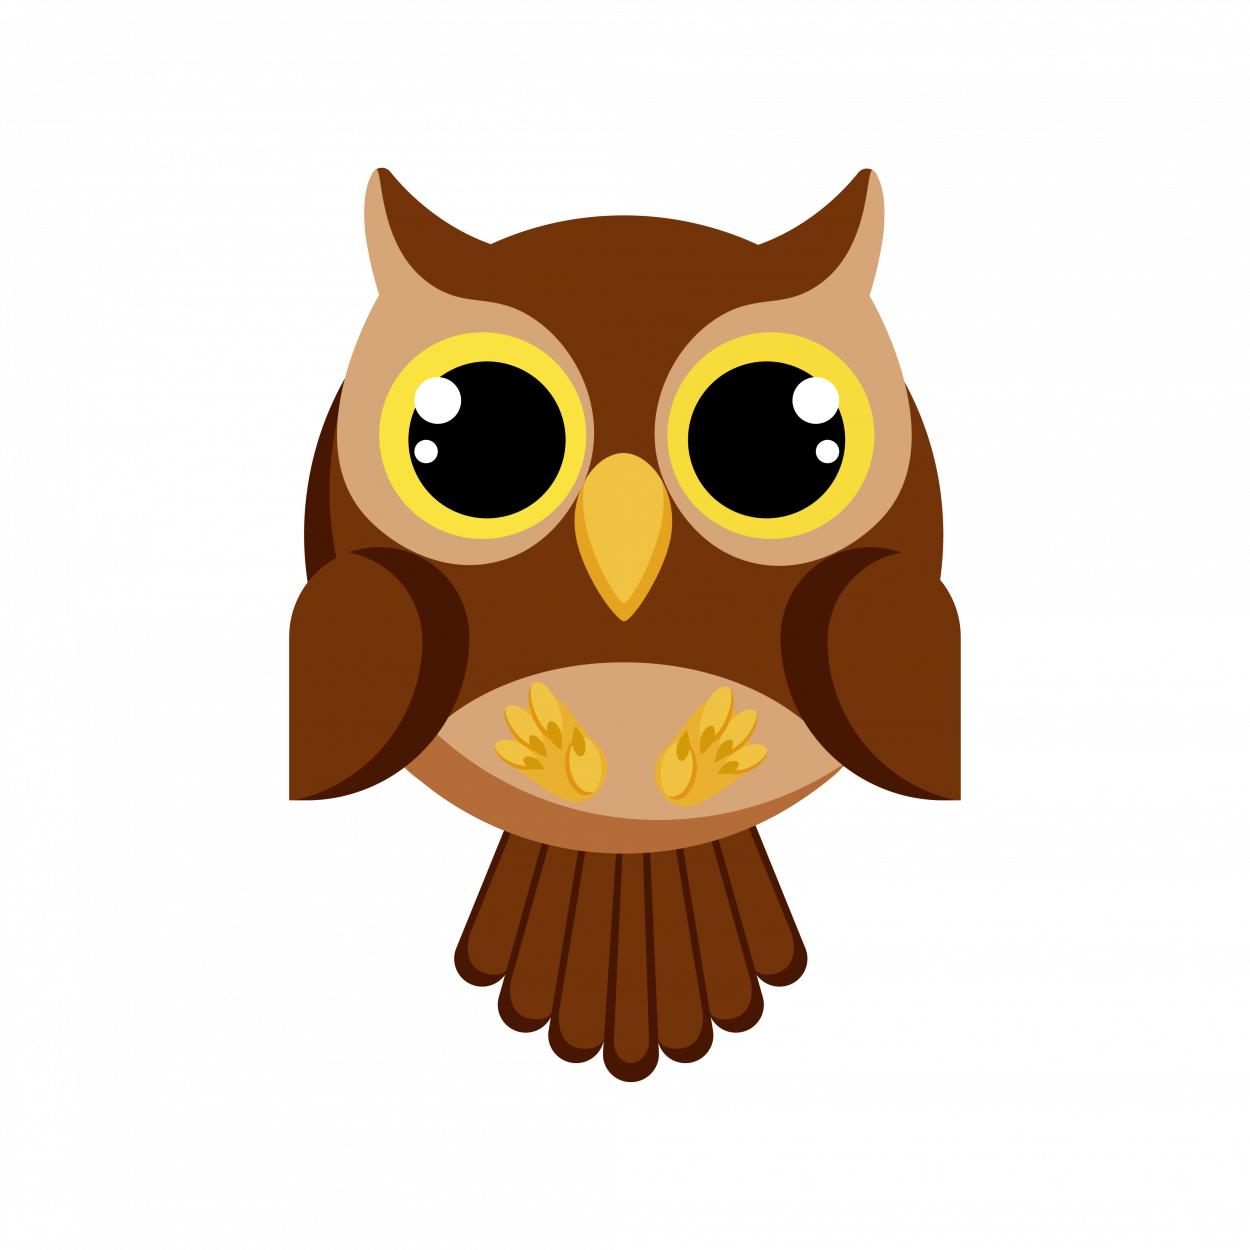 1609995083_owl.png